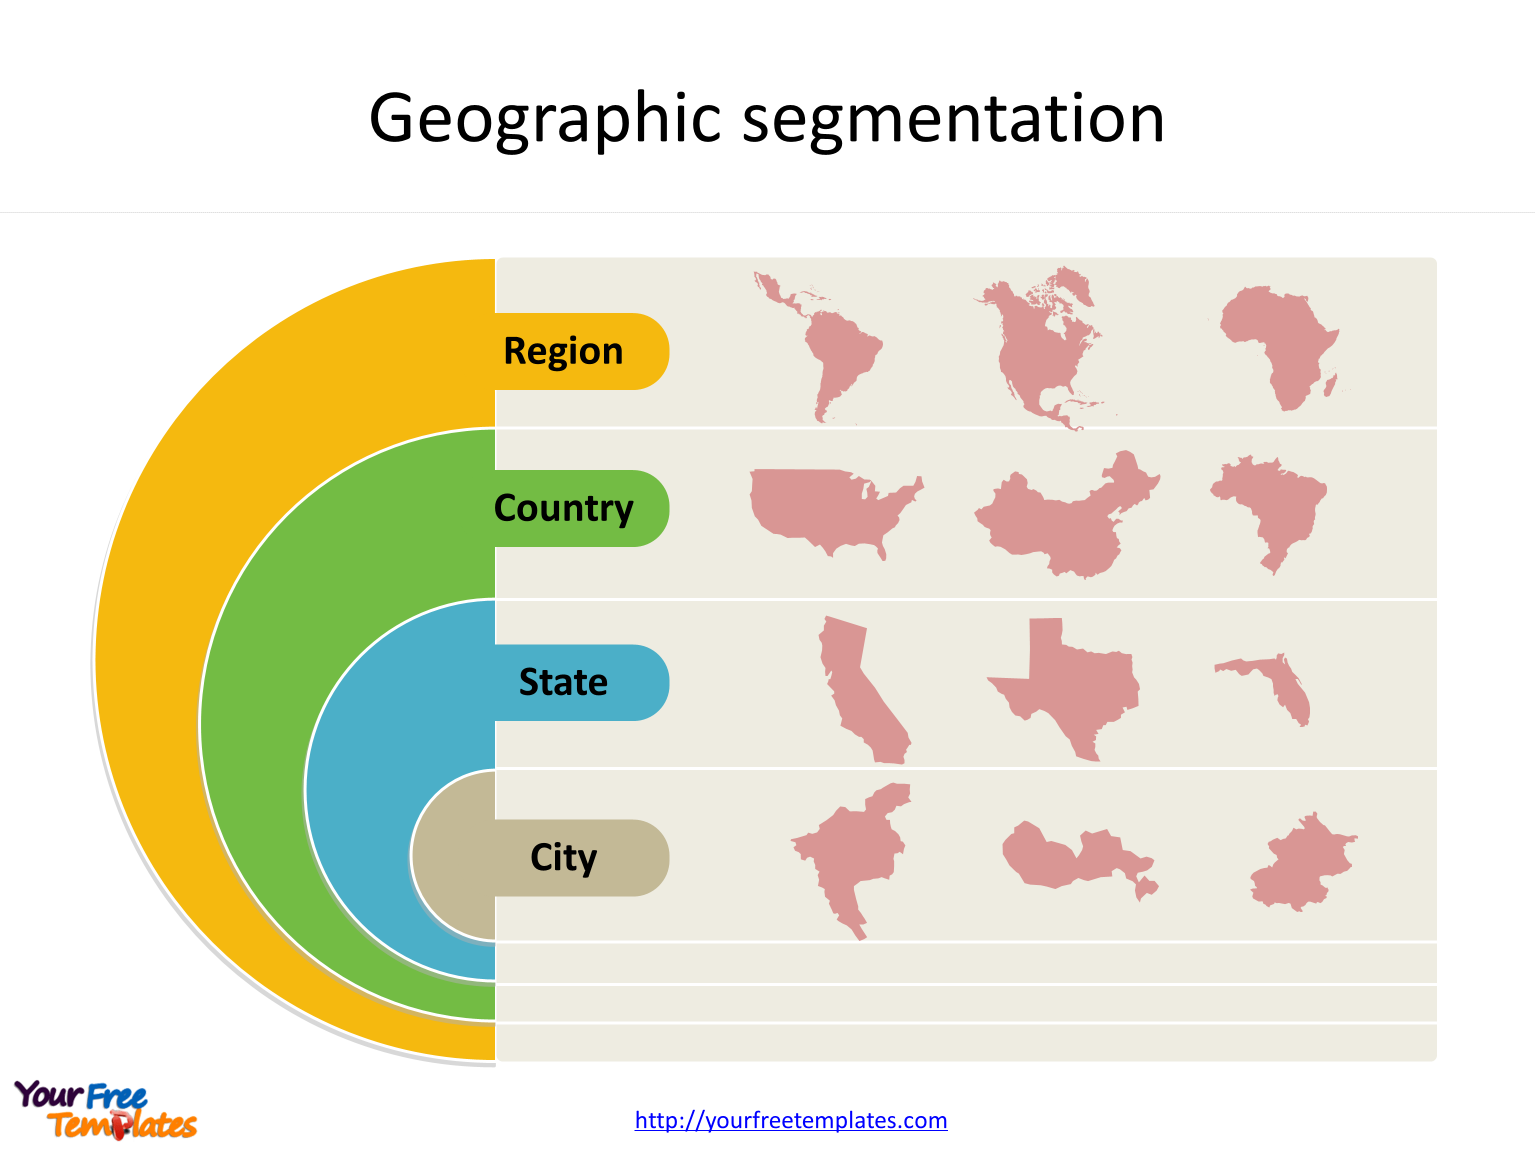 Consumer segmentation template of Geographic segmentation